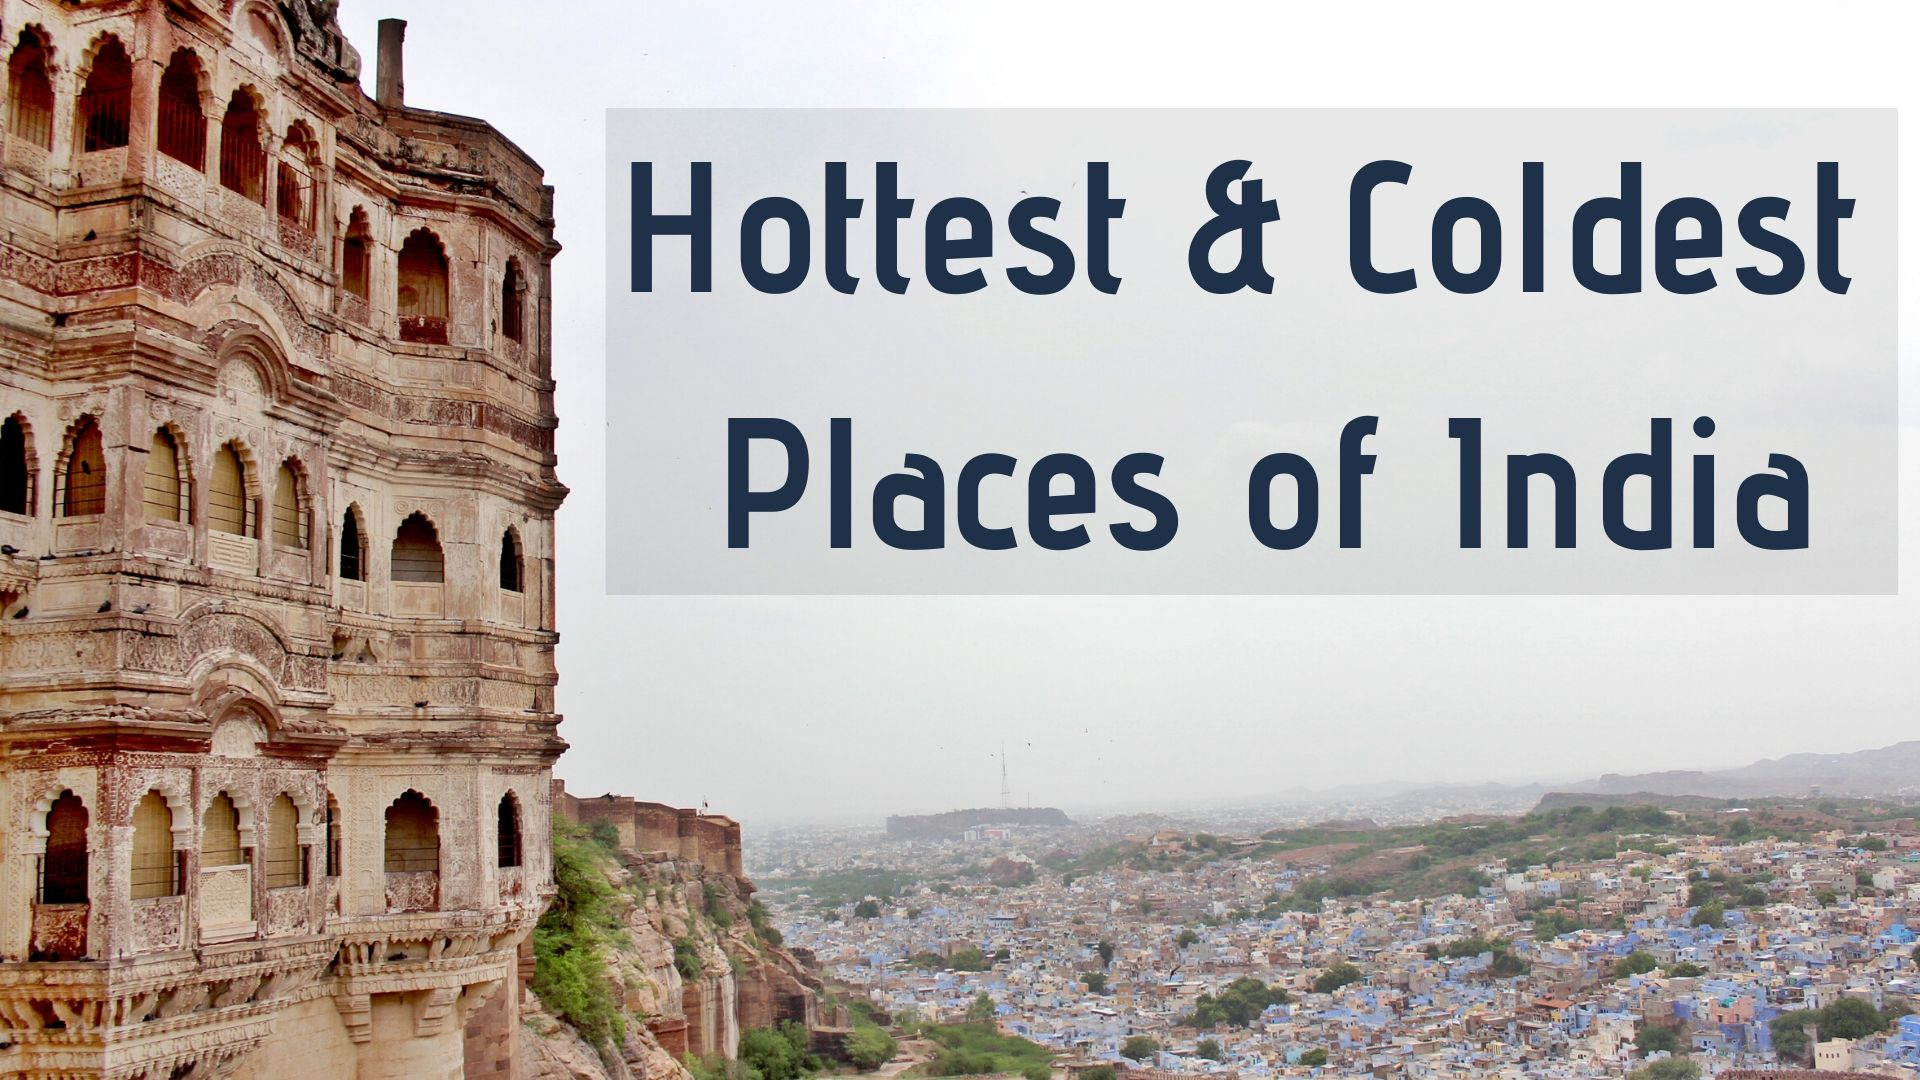 Hottest & Coldest Places of India